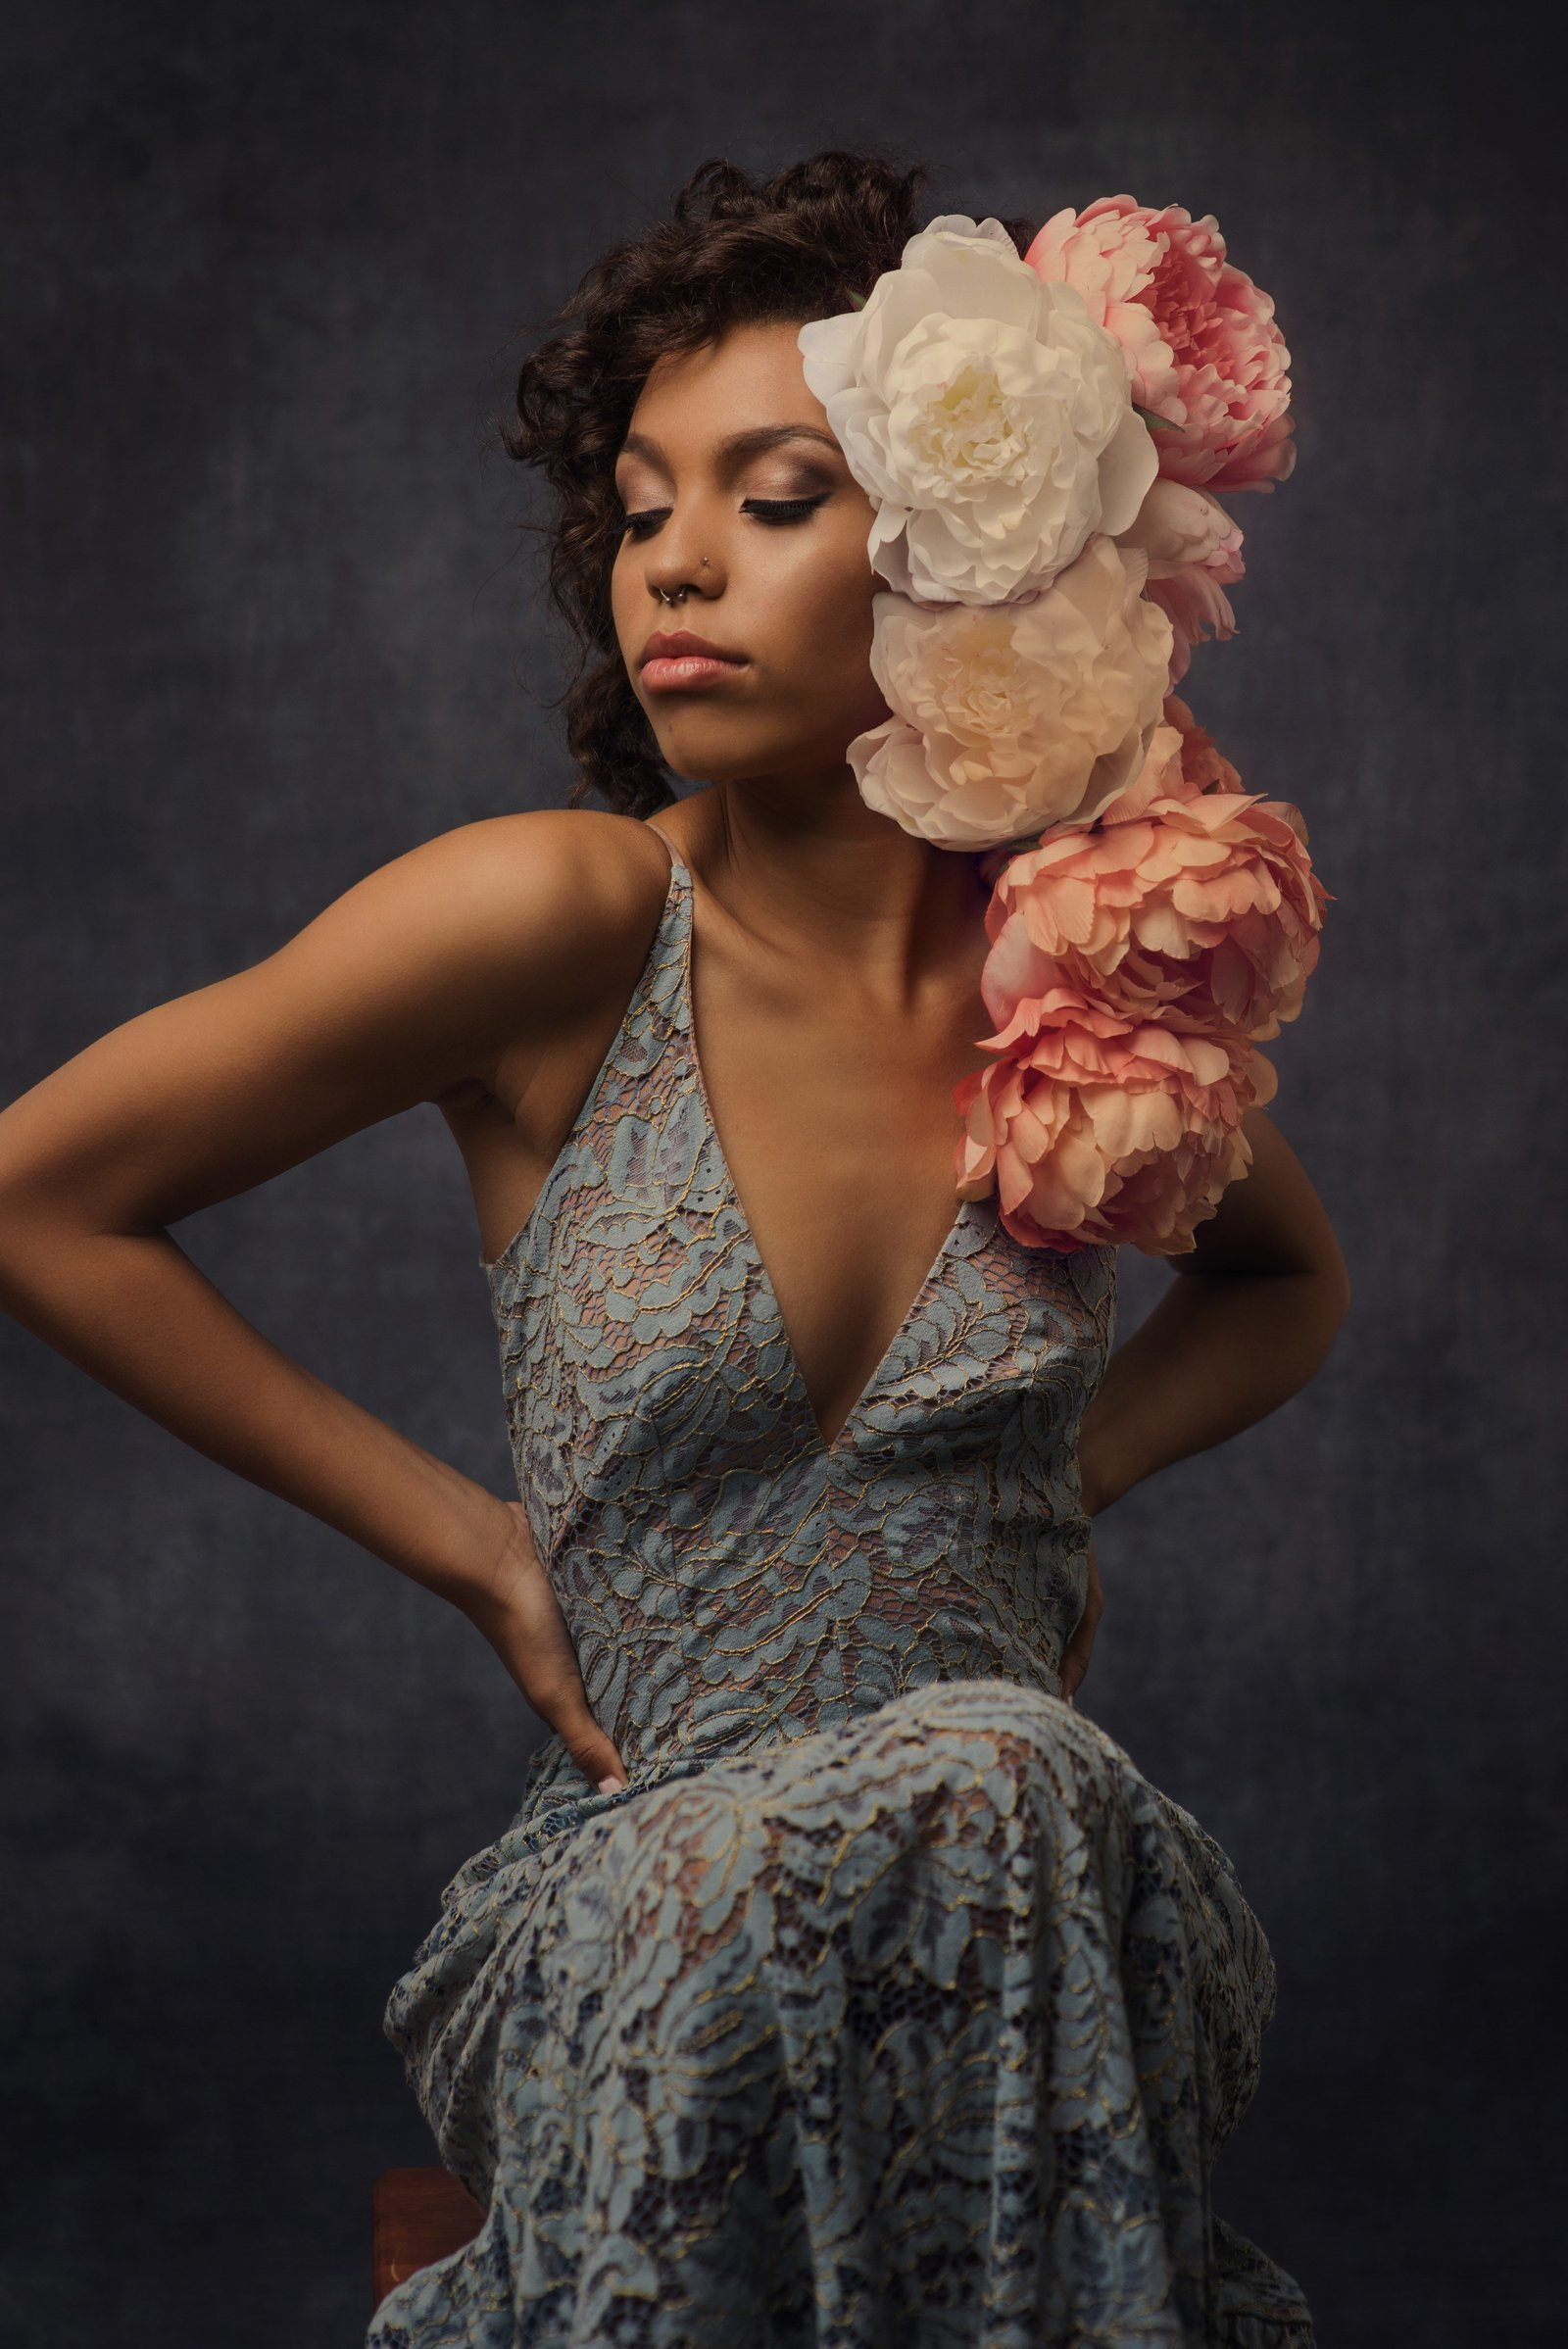 Senior girl with large flowers in her hair